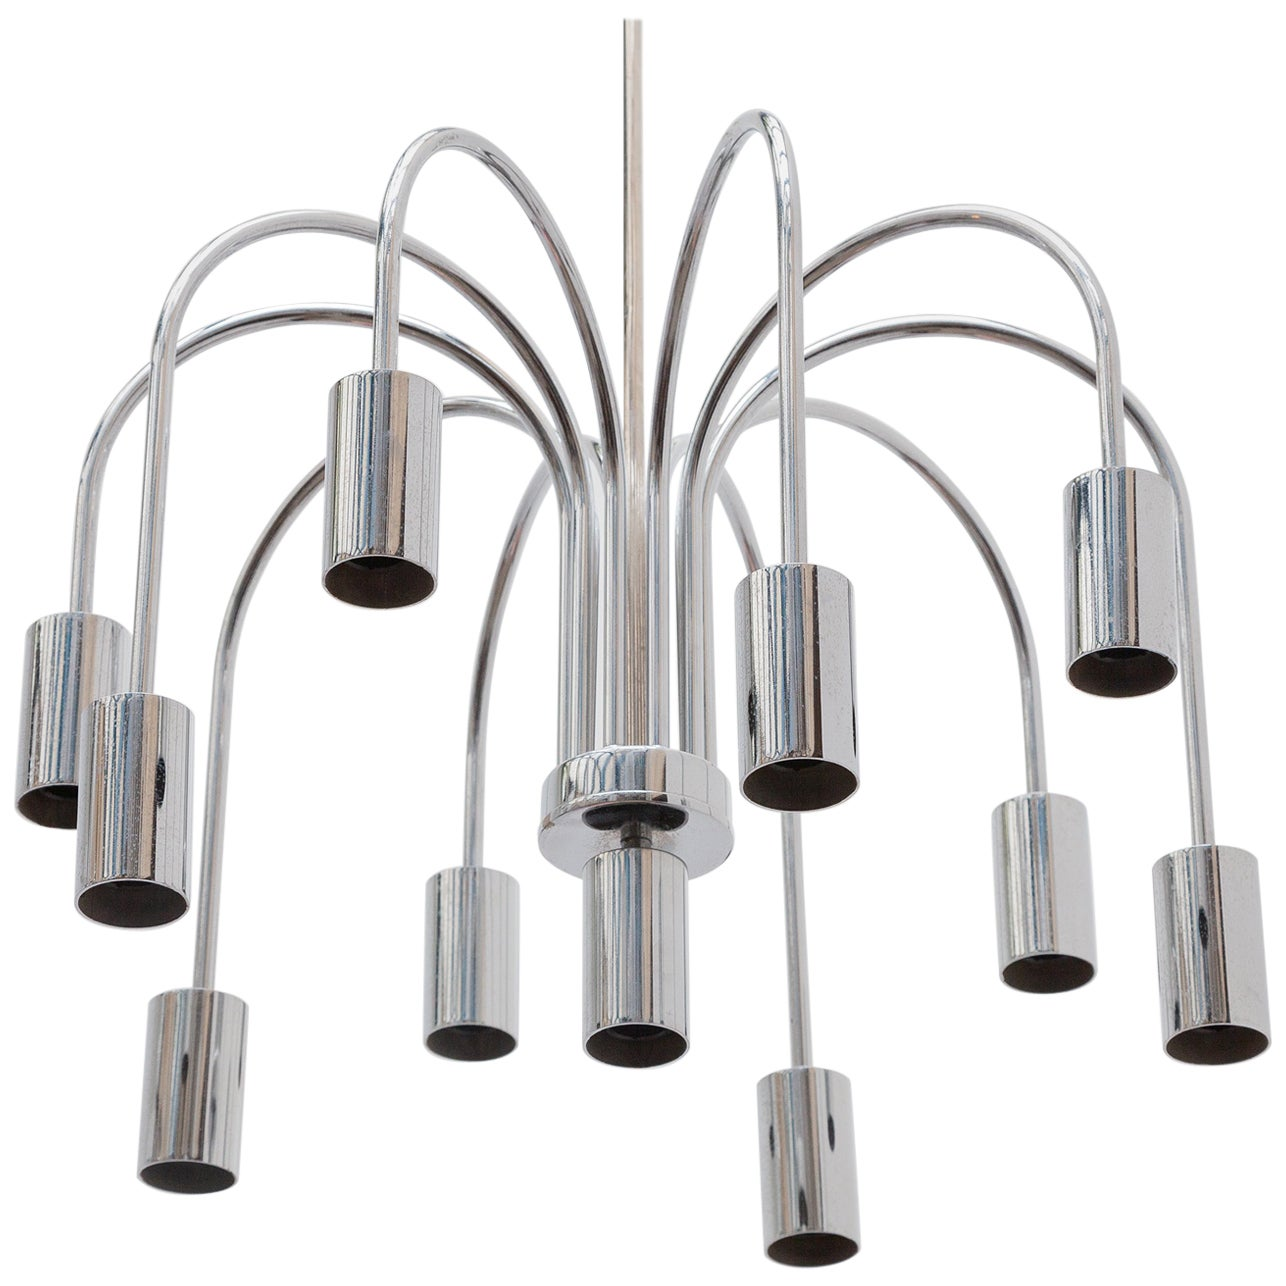 Chrome Ten-Arms Chandelier, Italy, 1970s